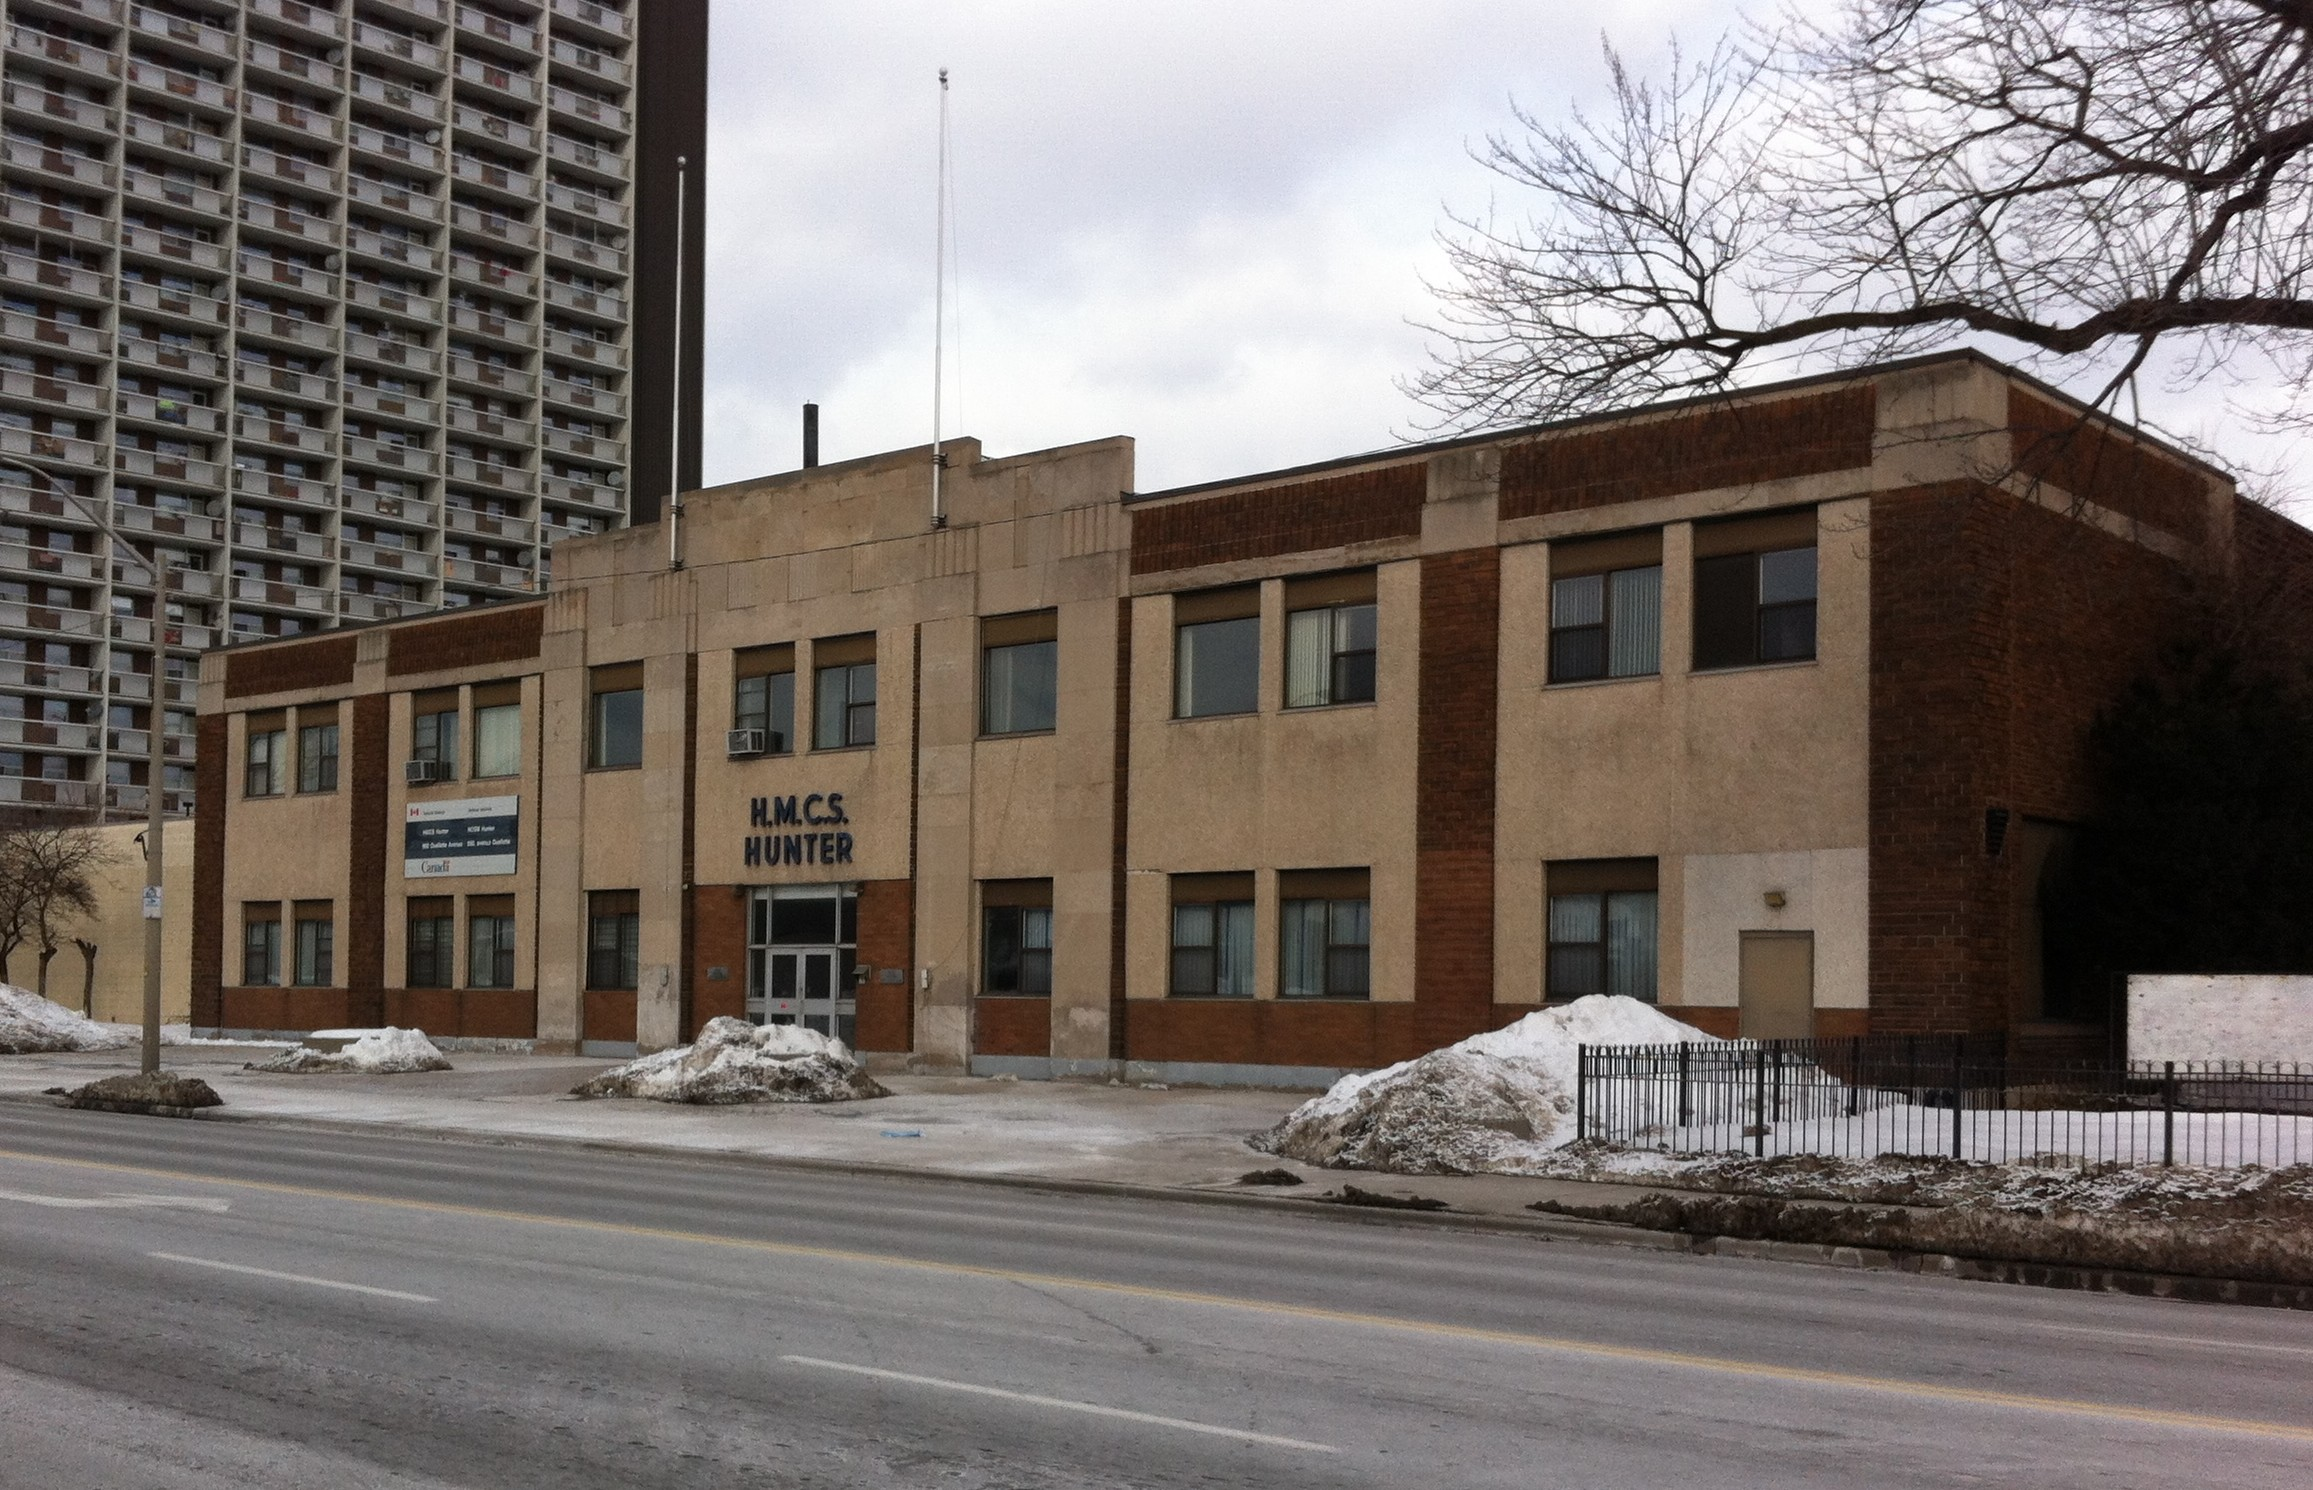 The former HMCS Hunter Naval Reserve Division building at 960 Ouellette Ave. in Windsor., February 13, 2015. (Photo by Mike Vlasveld)